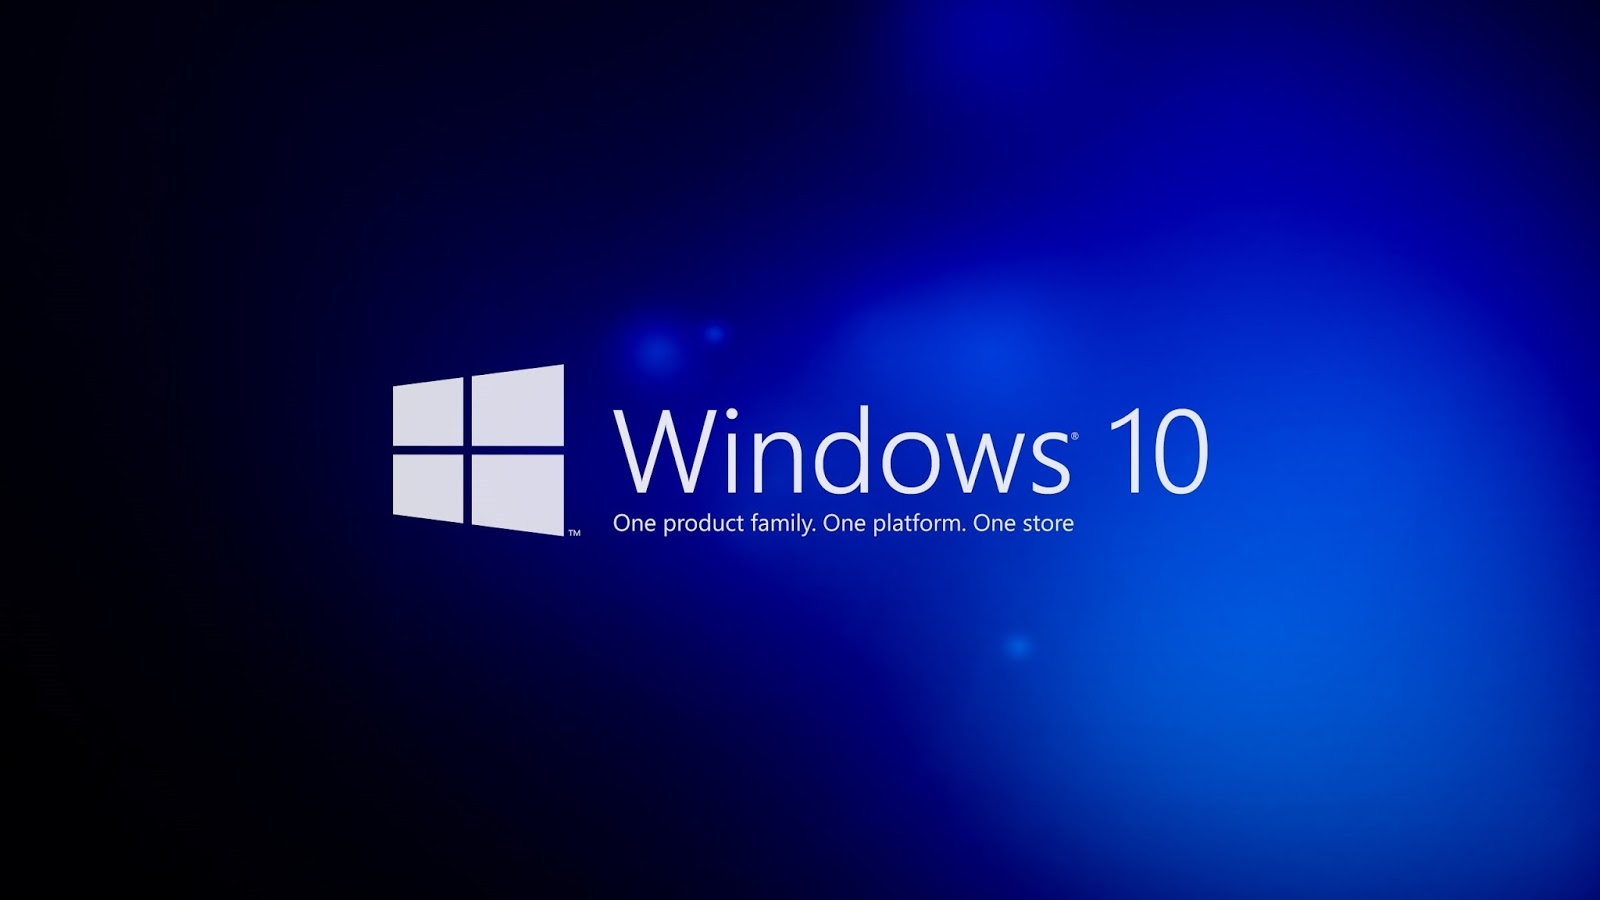 Product keys for window 10 //100% Working\\